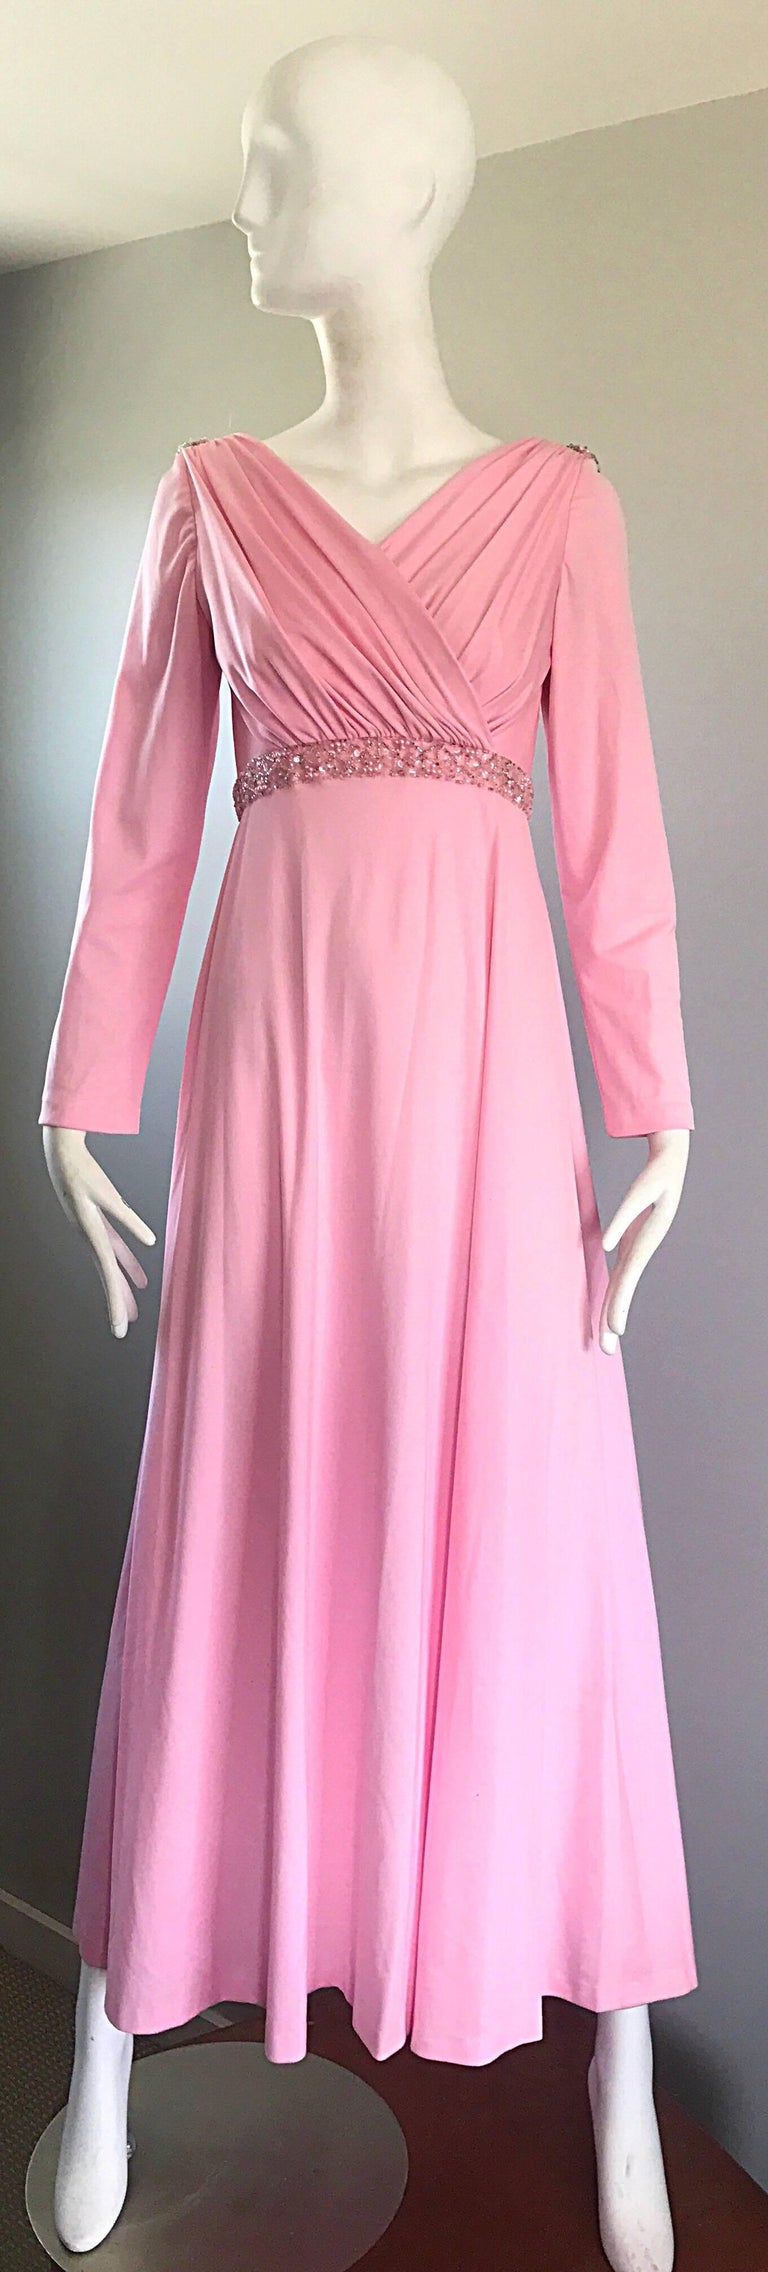 Amazing and gorgeous vintage 70s pale pink sequined and beaded long sleeve jersey gown / maxi dress! Features a pleated tailored bodice, encrusted with hand-sewn sequins and beads at the waist. Draped low cut back is also encrusted with hand-sewn